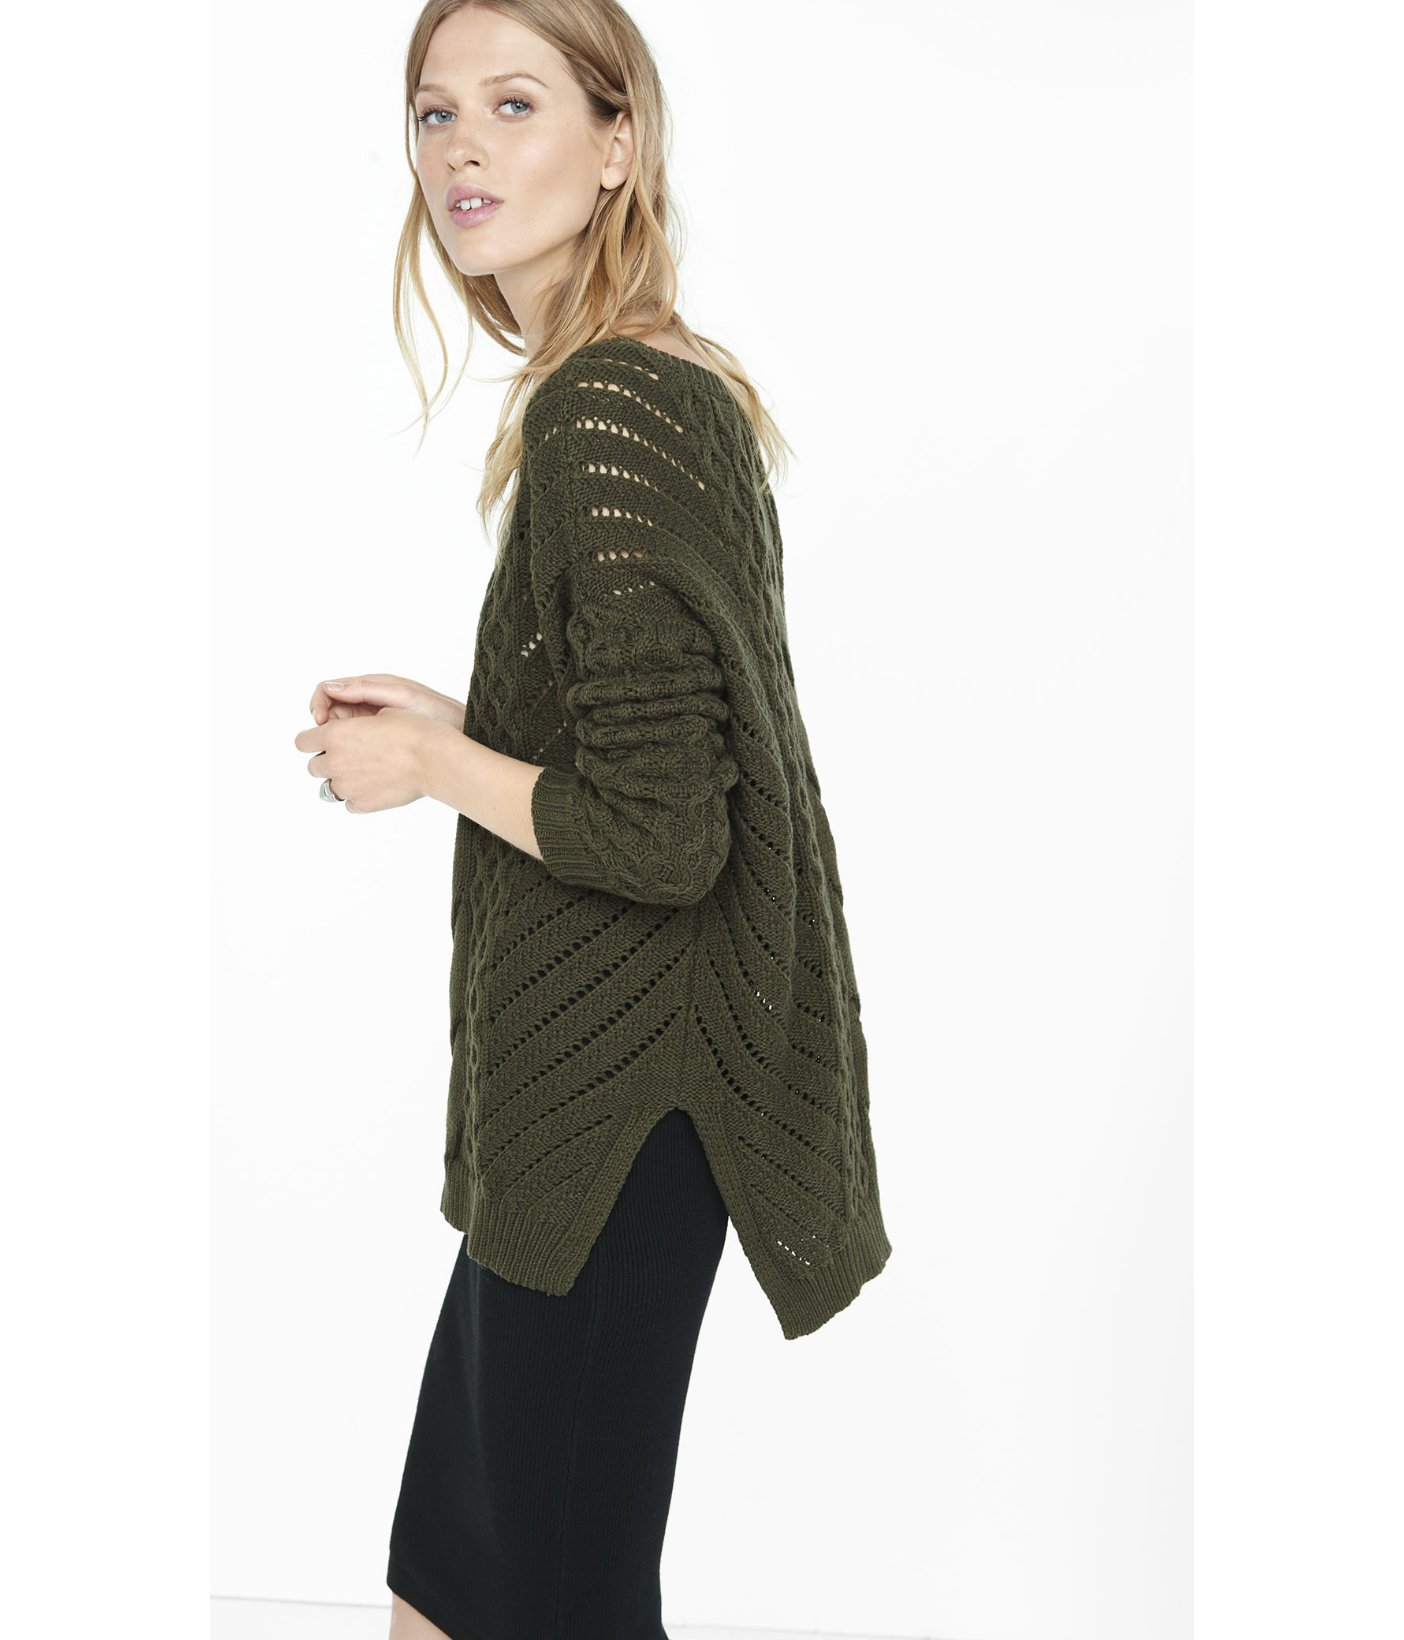 Express Oversized Open Cable Knit Tunic Sweater in Green | Lyst